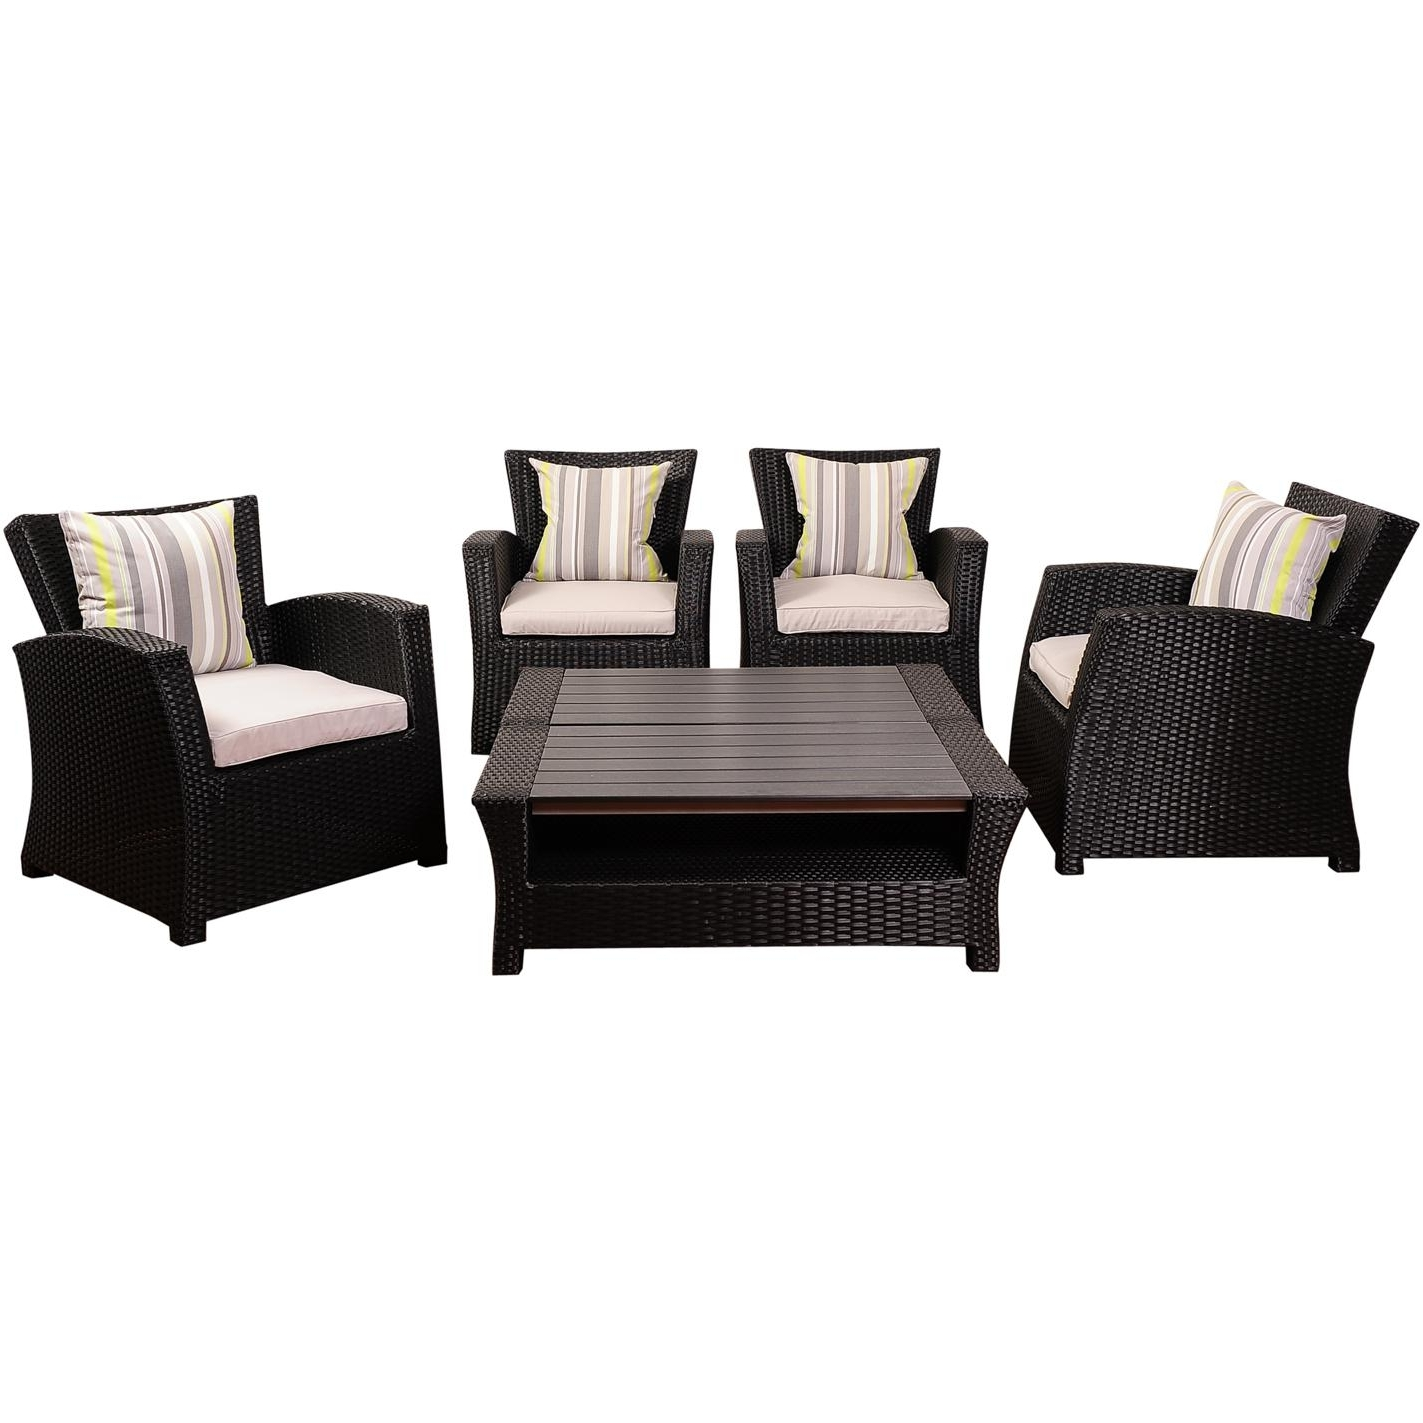 Best And Newest Black Patio Conversation Sets In Atlantic Staffordshire 4 Person Resin Wicker Patio Conversation Set (View 5 of 20)